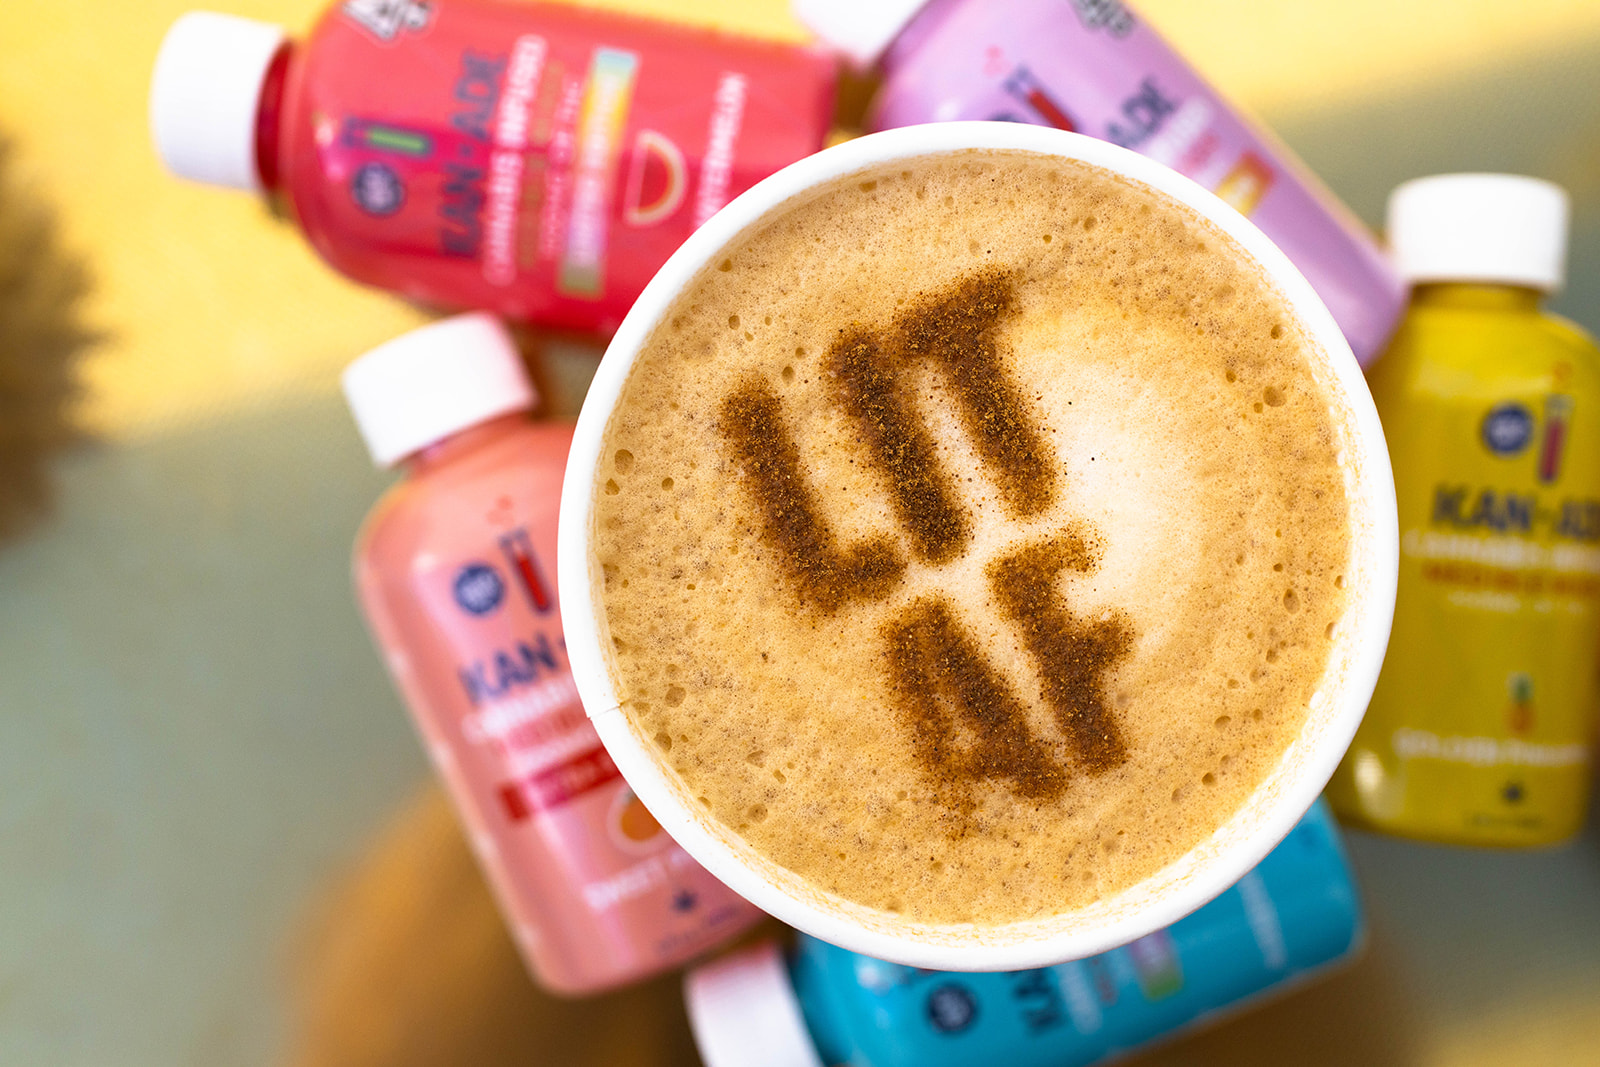 kan+ade bottle background with a cup of coffee with the letter AF written on the foam